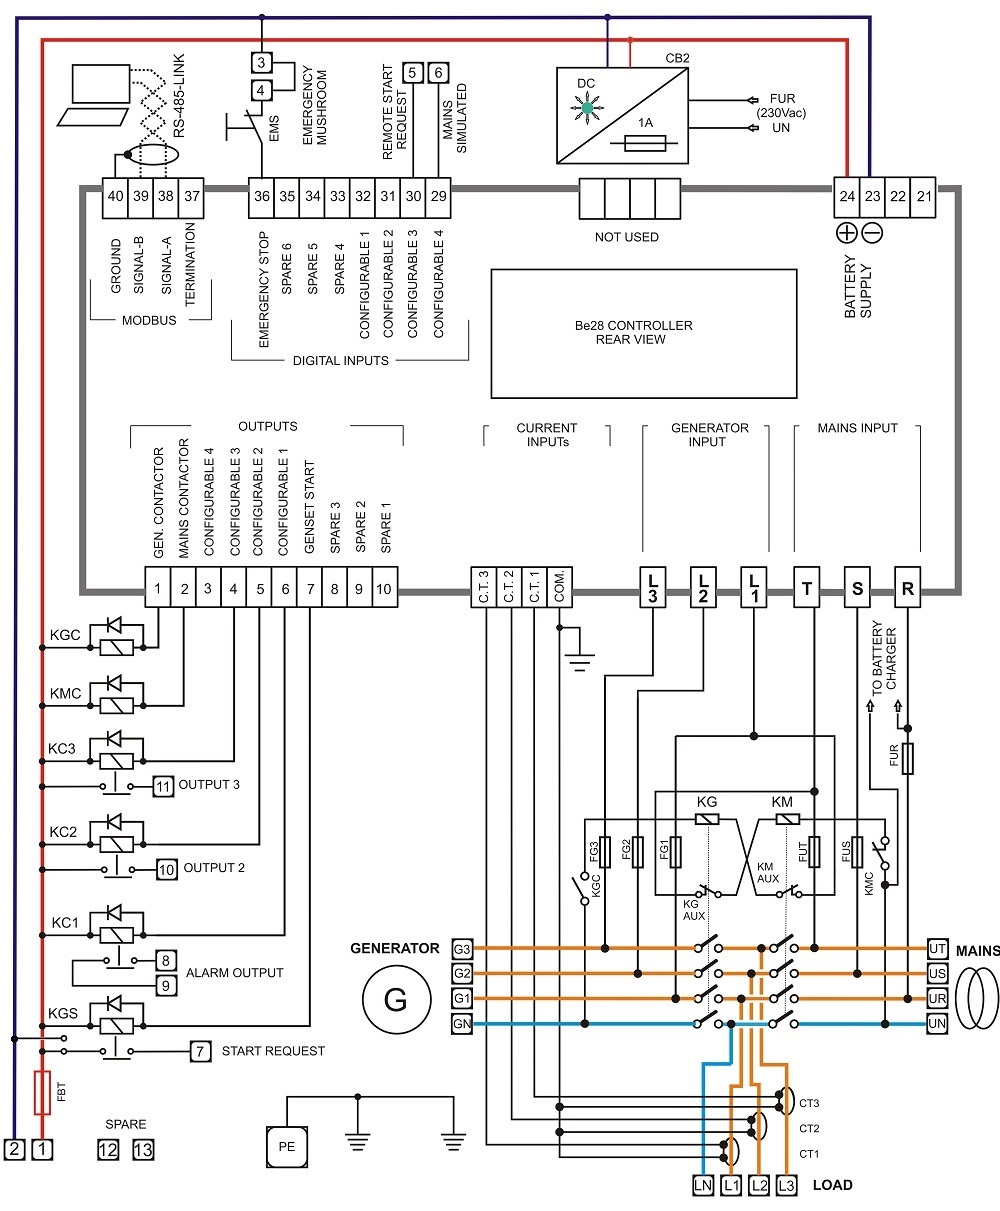 Ats panel wiring diagram free download on ats panel wiring diagram free download #3 on ABB Motor Wiring Diagram on Rotary Encoder Wiring-Diagram on Forward Reverse Motor Wiring Diagram on ats panel wiring diagram free download #3